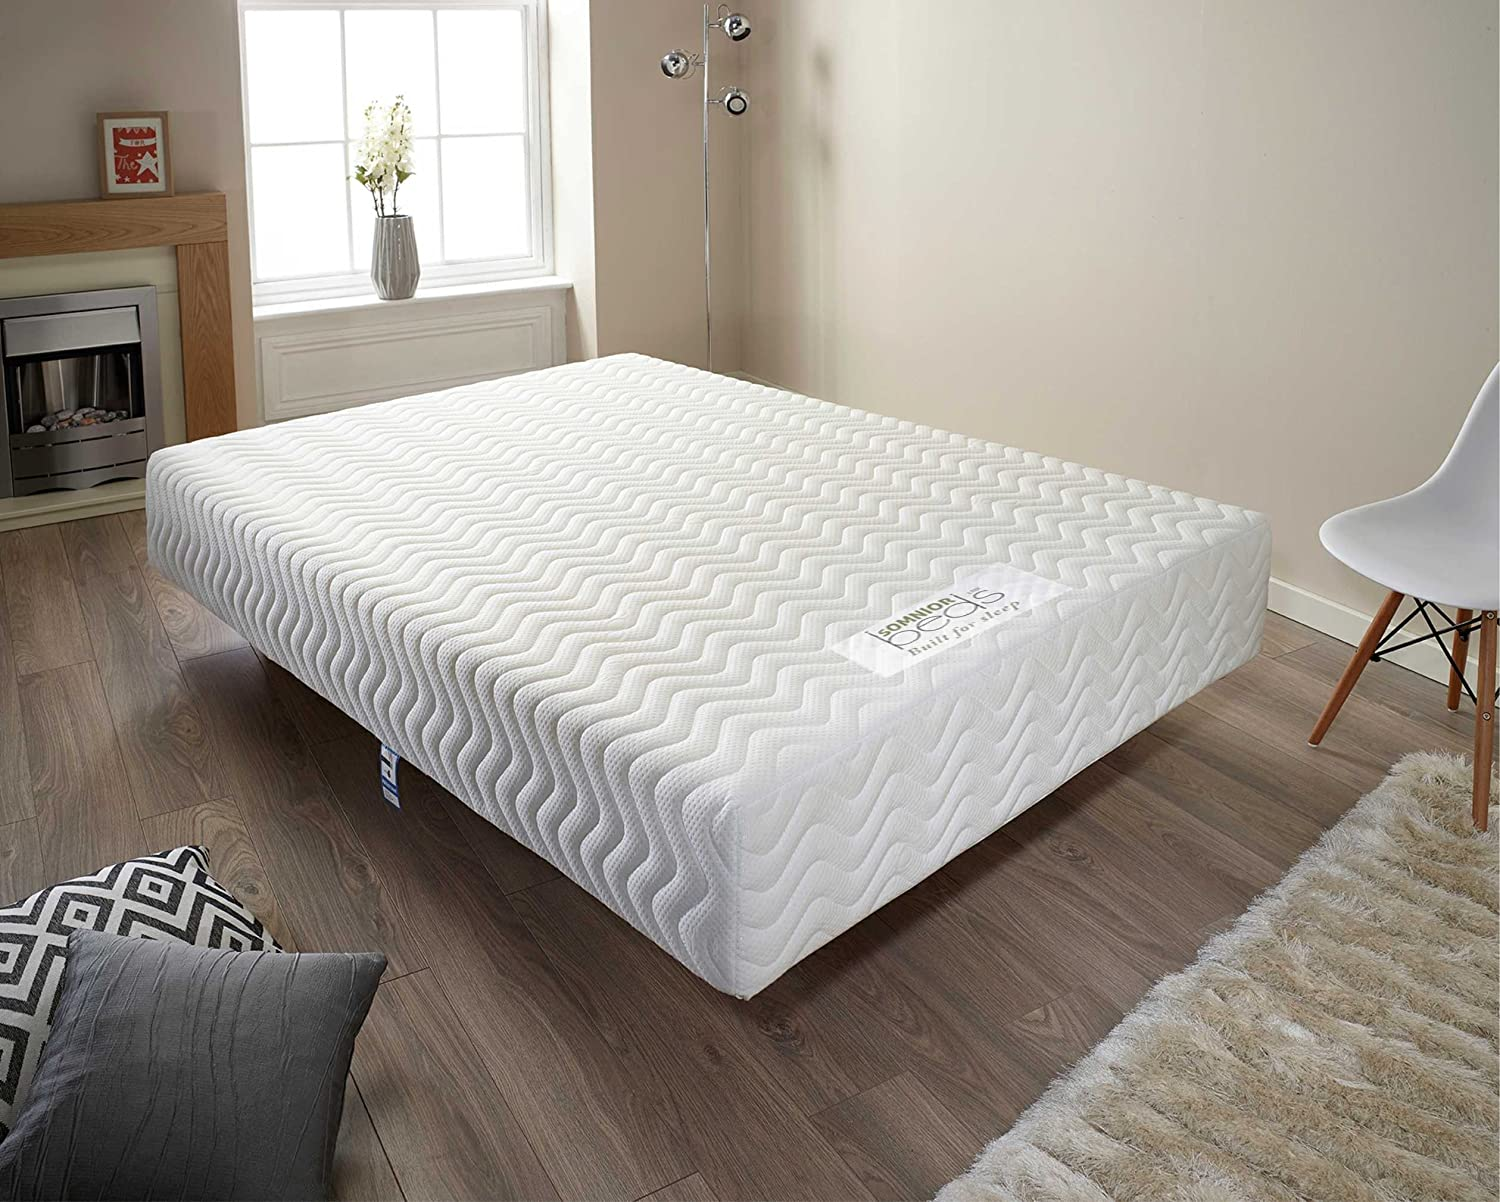 mattresses ideas do bathroom discover pin mattress about housefurniture tempurpedic foam posts on furniture by memory pinterest